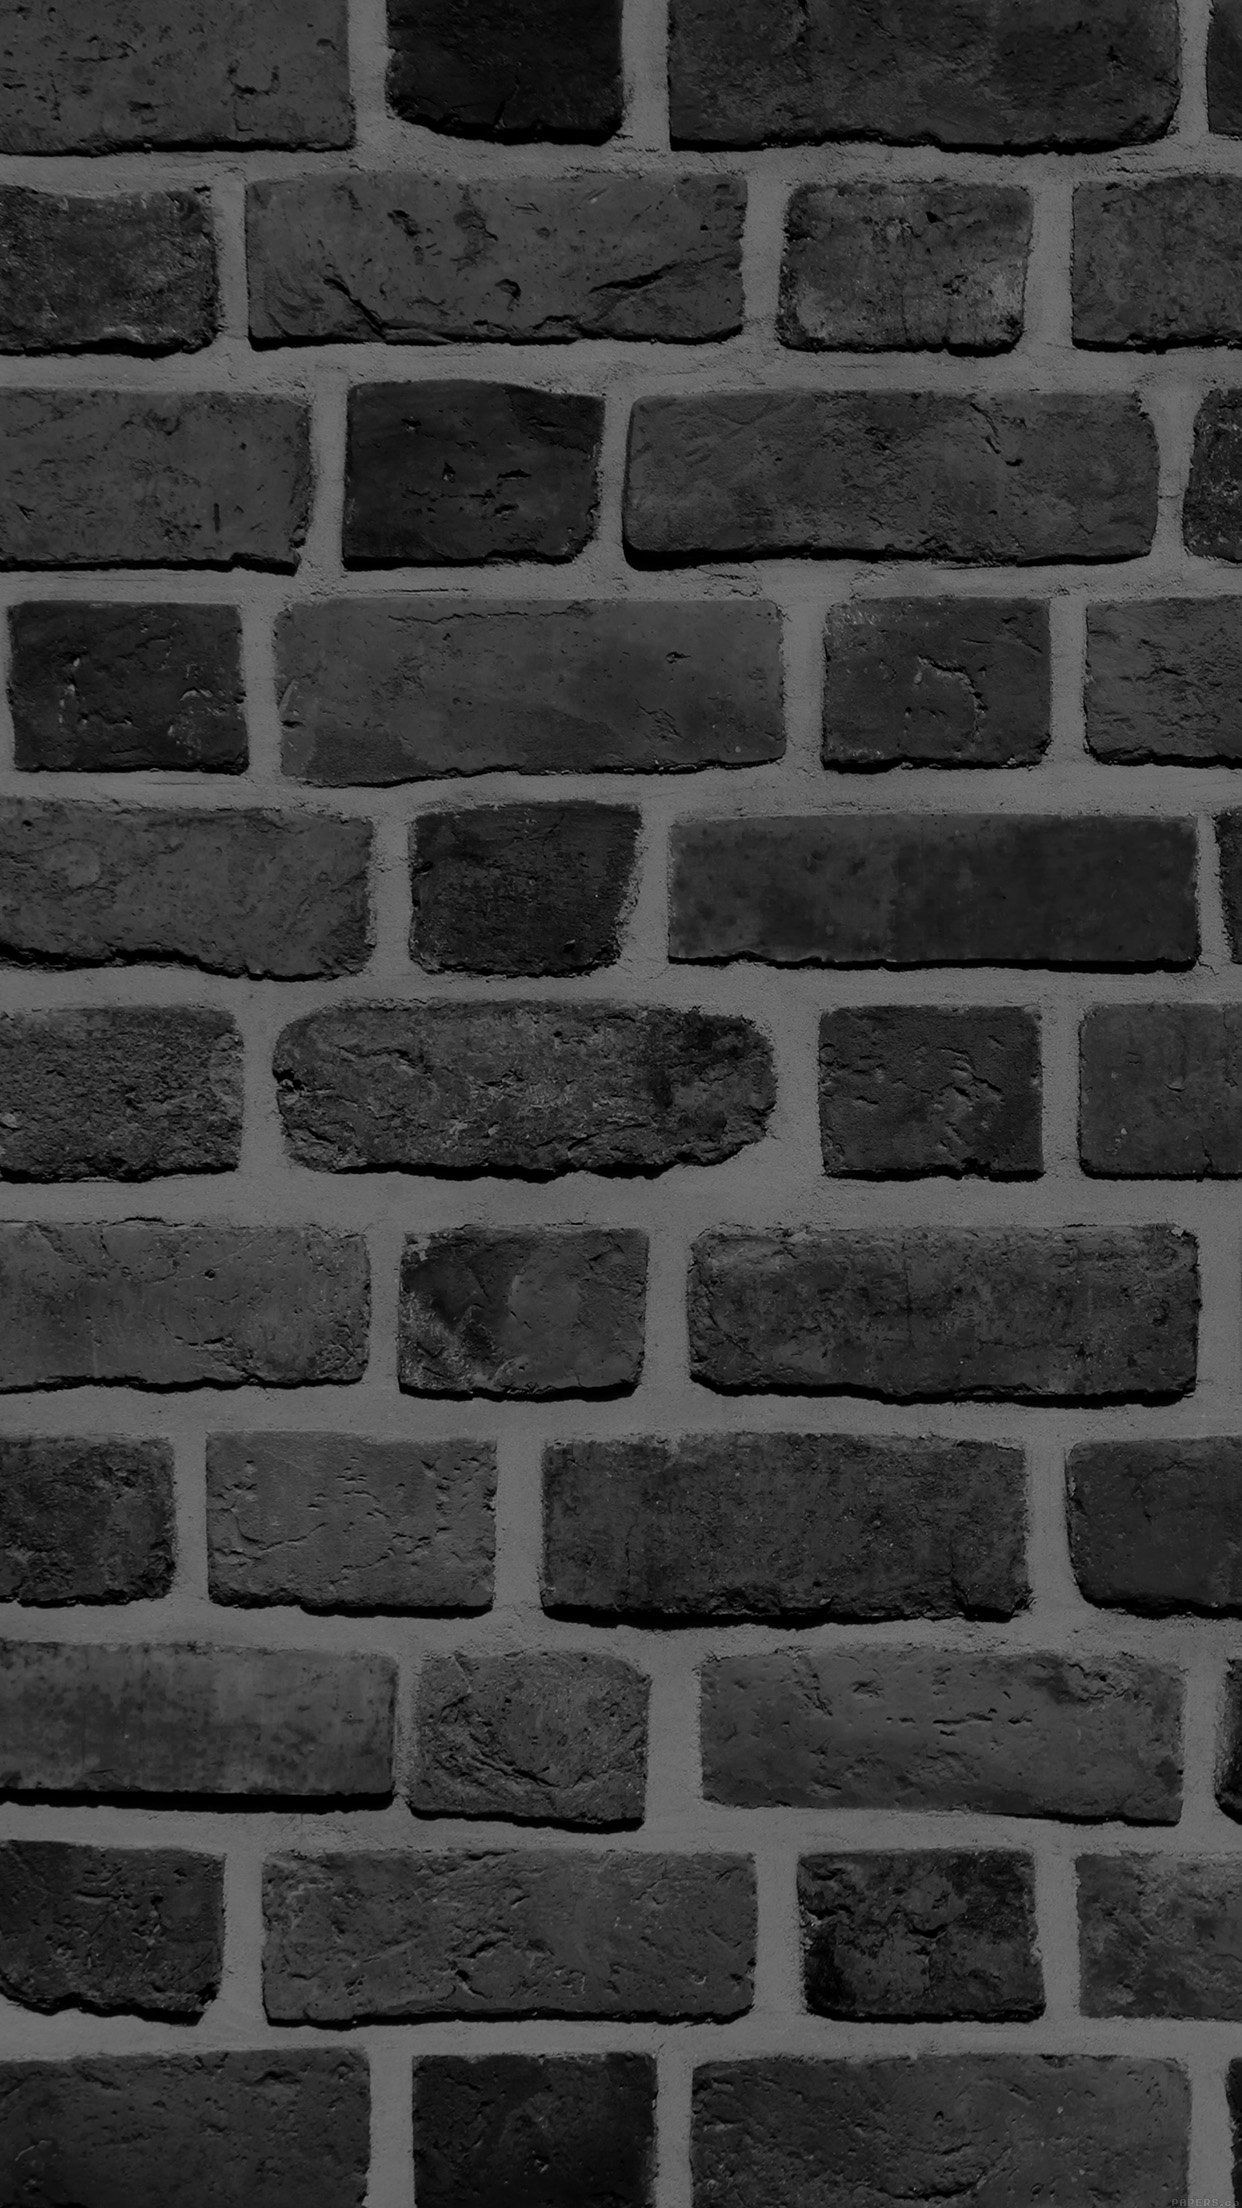 1242x2208 iPhone7papers - vf57-brick-texture-wall-bw-black-nature-pattern